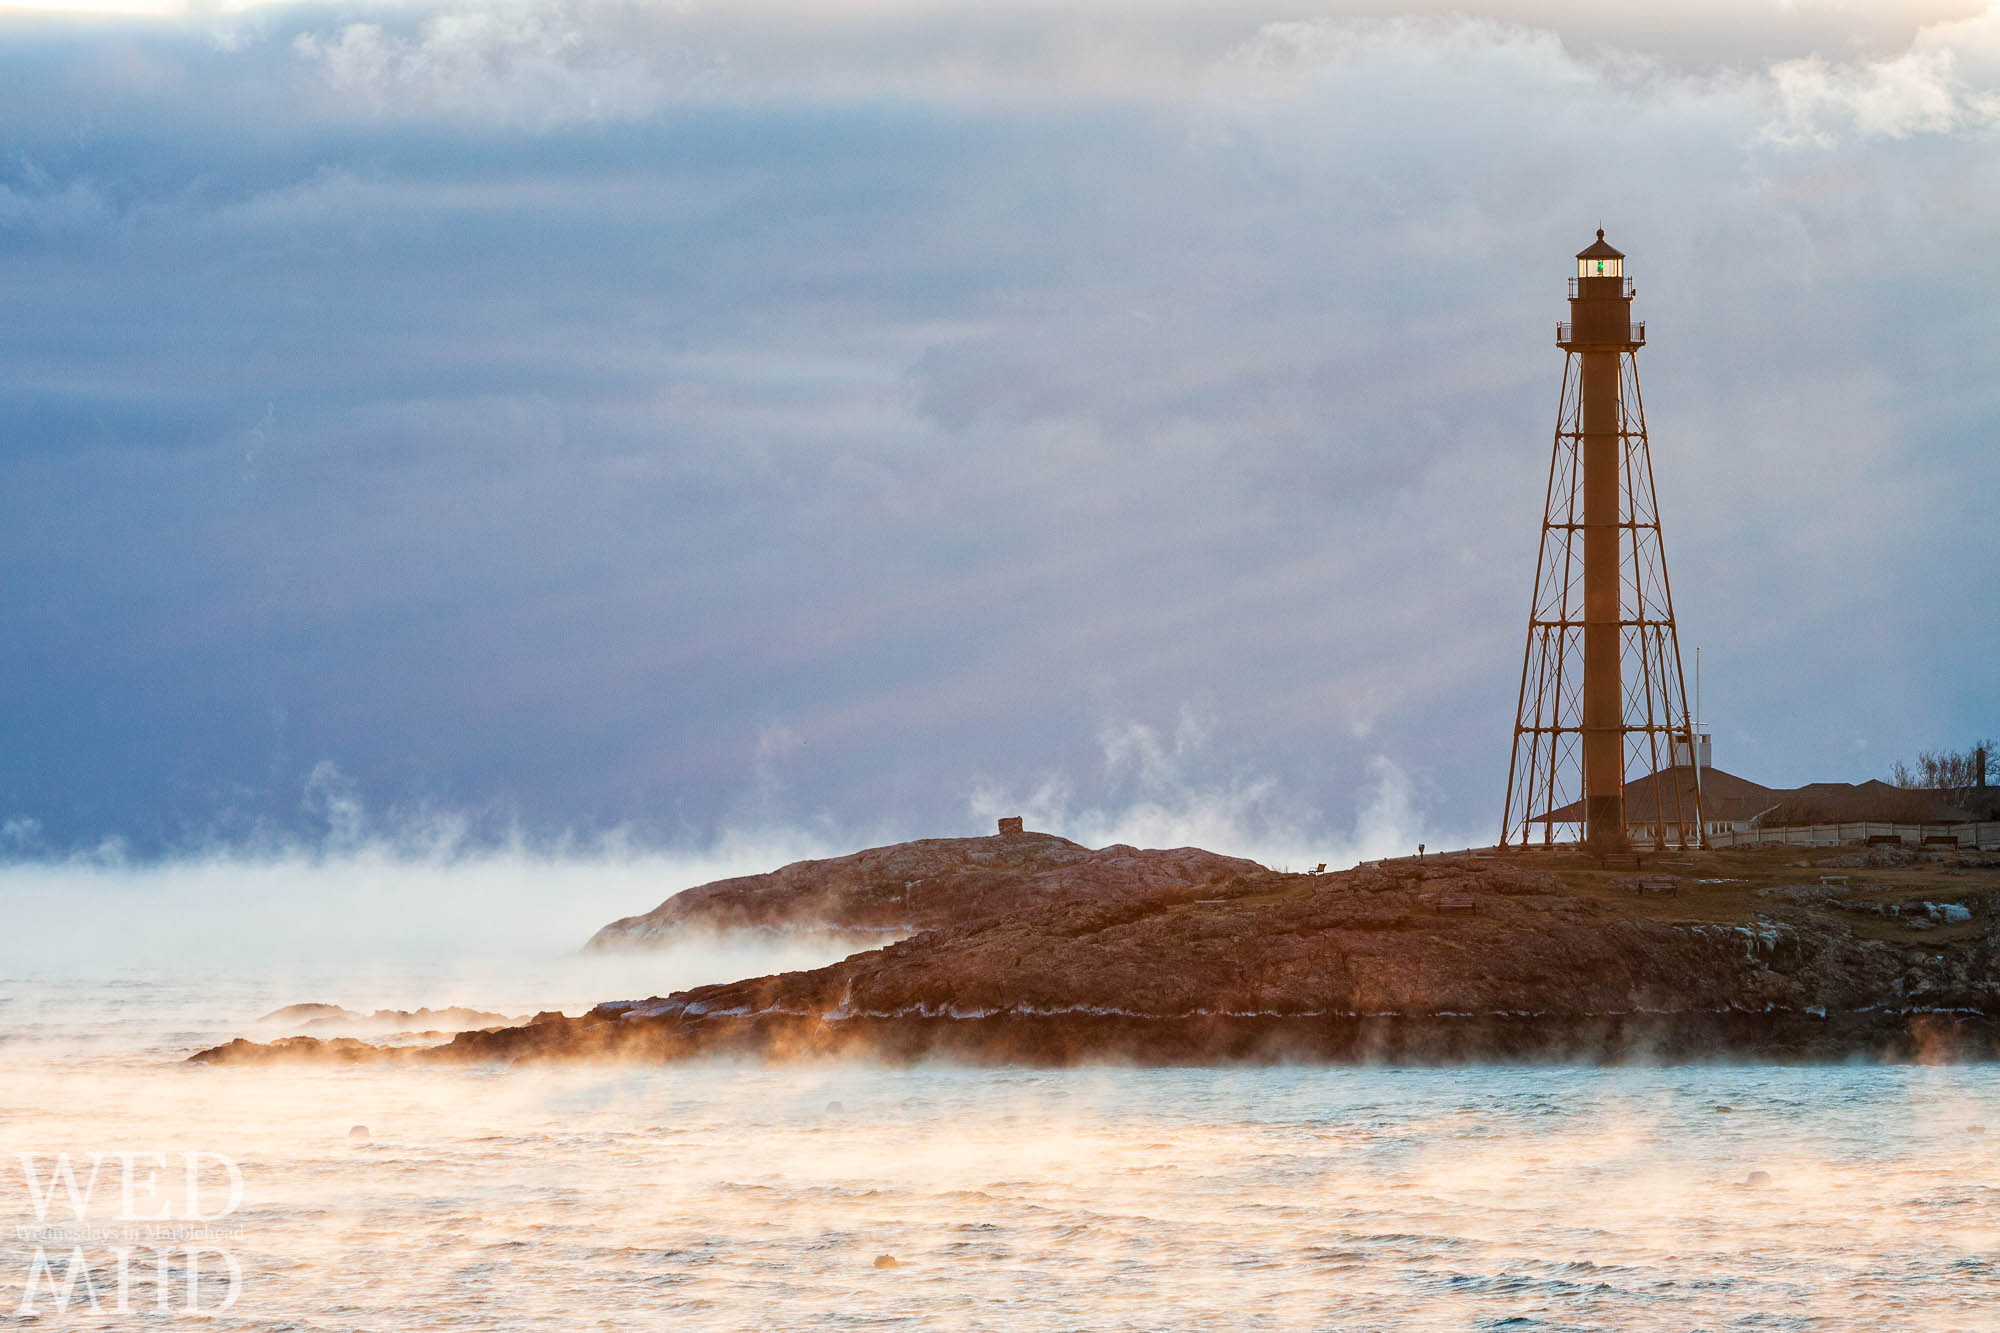 Sea smoke rises from the warm ocean waters and into the frigid air encircling Marblehead Light at dawn